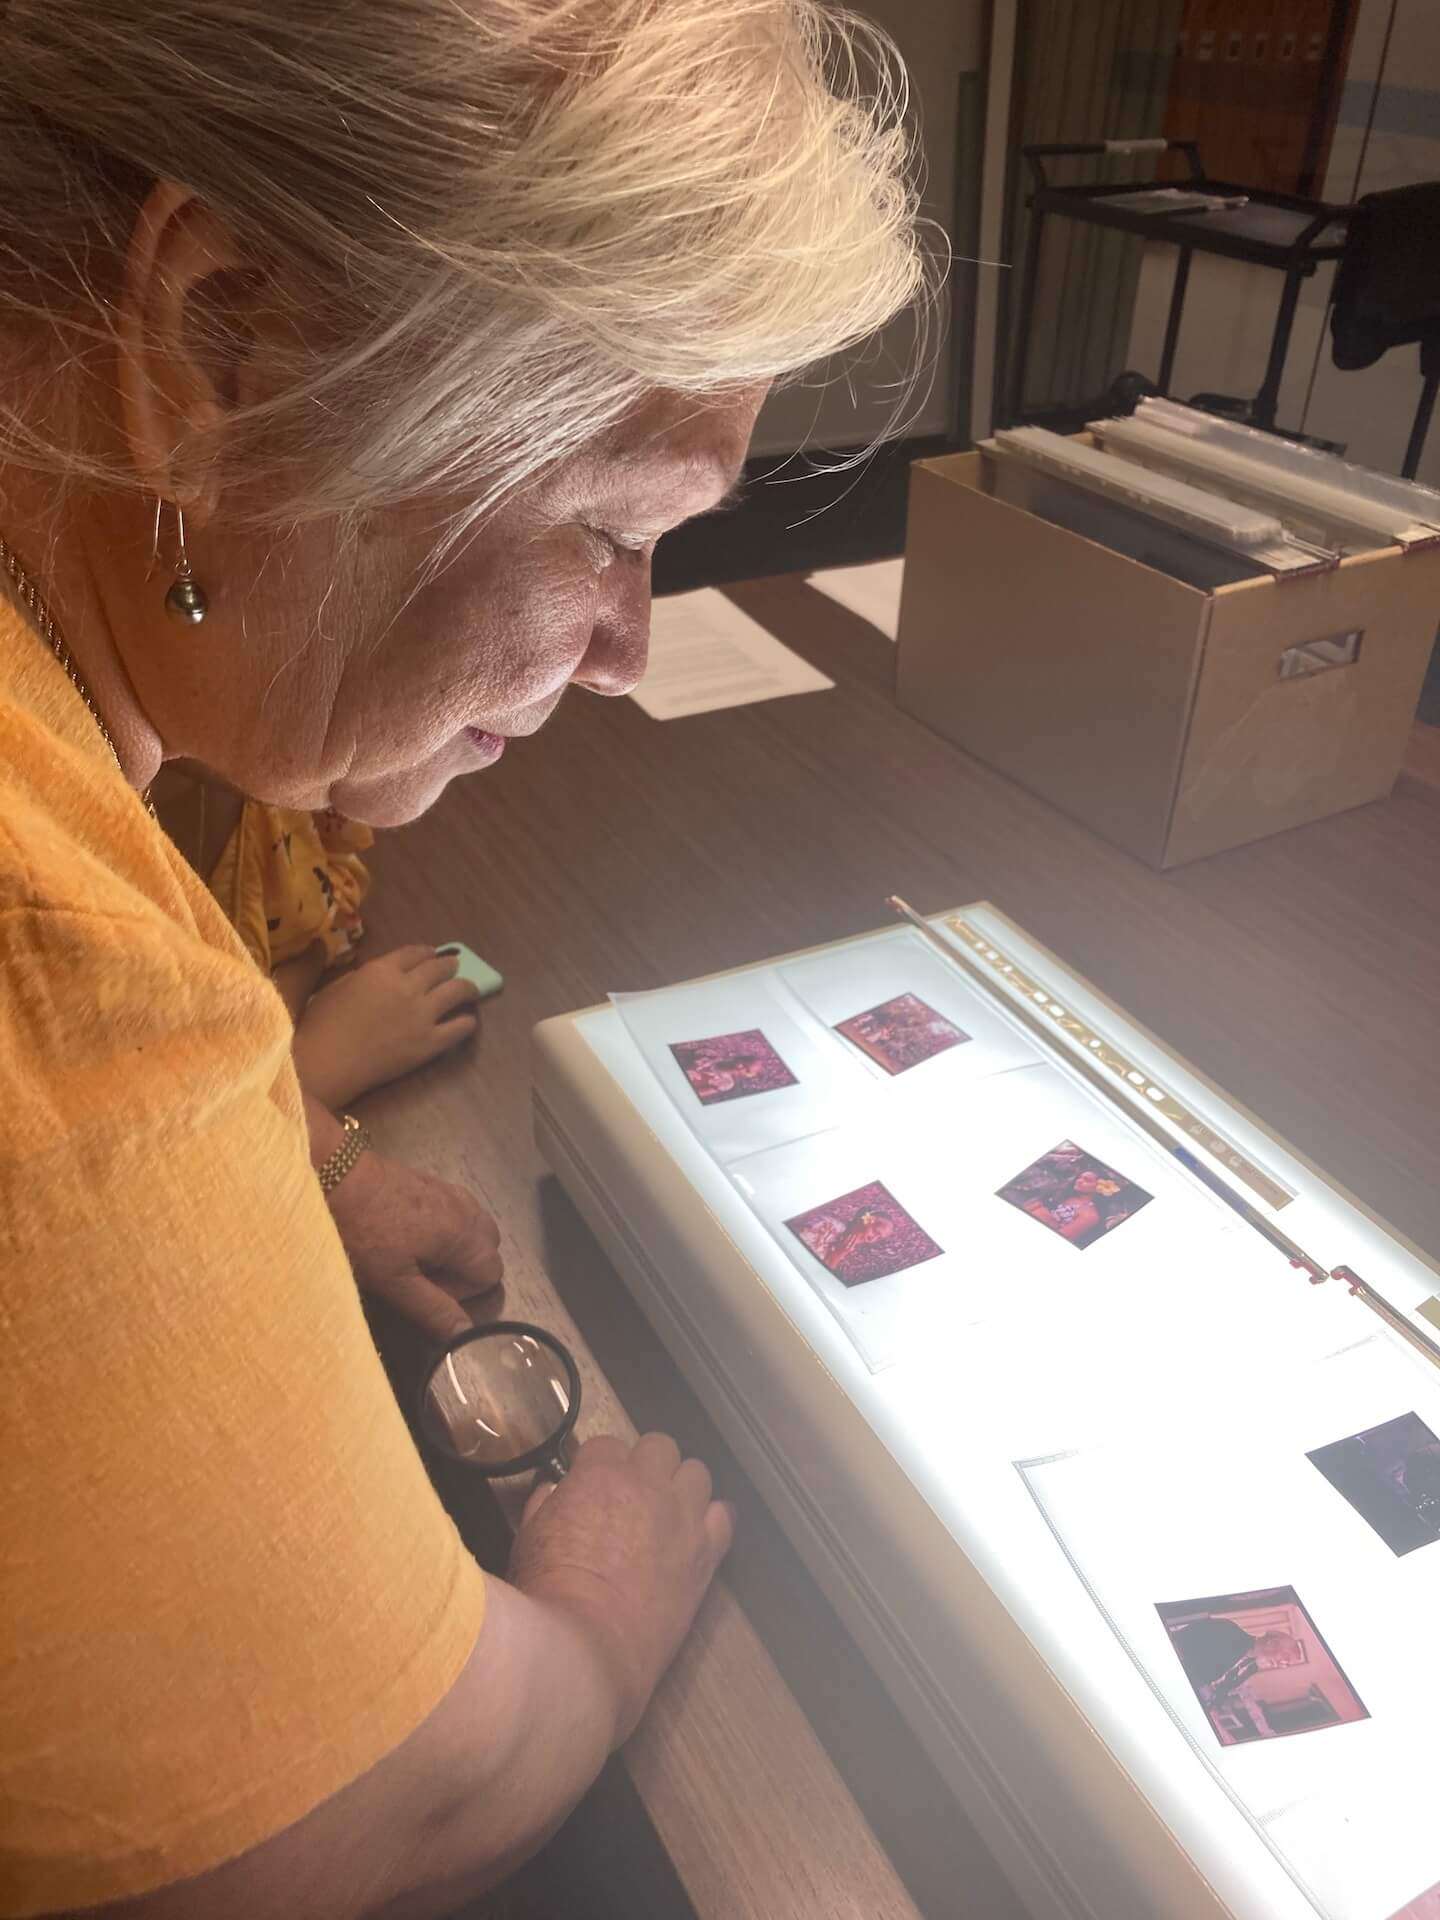 Woman looking at slides on a table